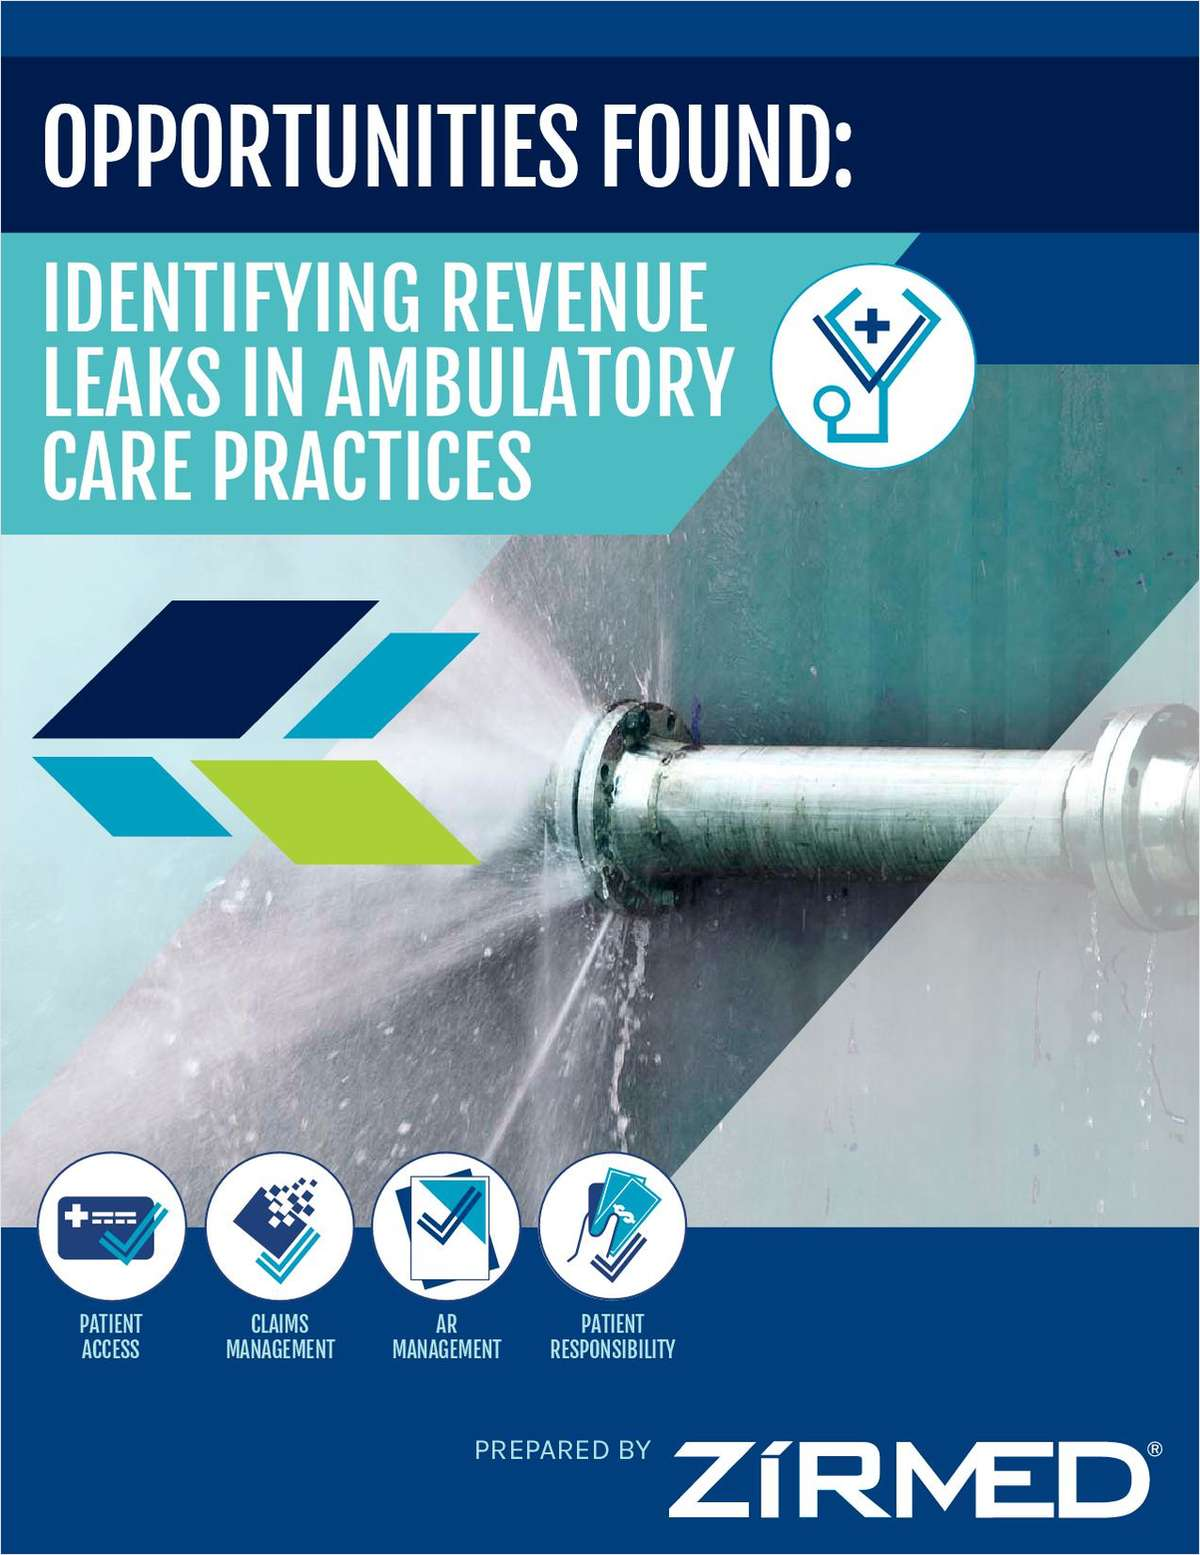 Opportunites Found: Identifying Revenue Leakage Leaks in Ambulatory Care Practices